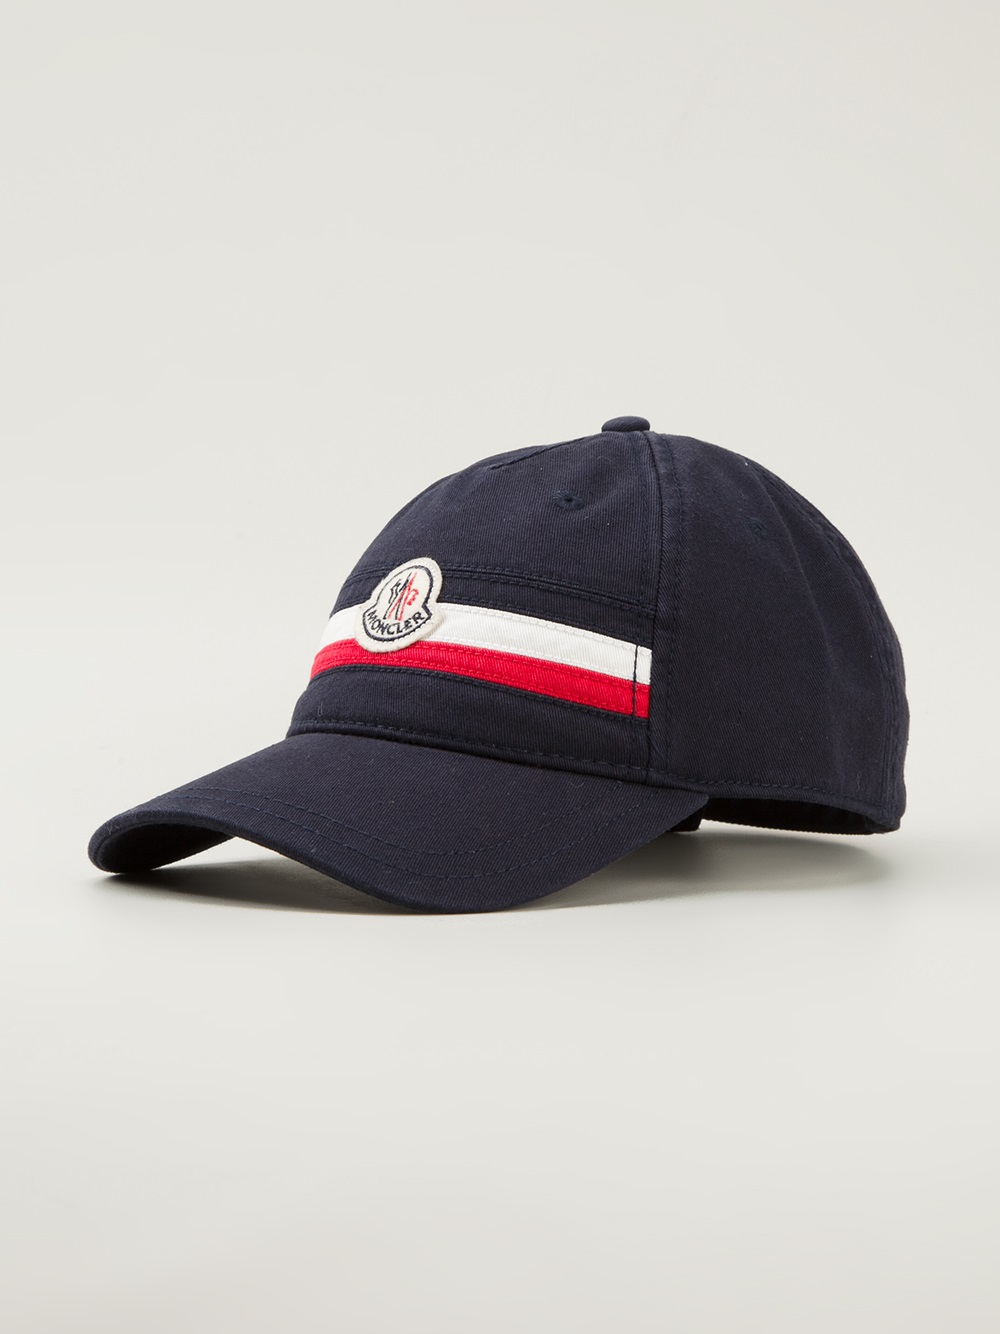 Lyst - Moncler Logo Detail Baseball Cap in Blue for Men 9f0fa4914343